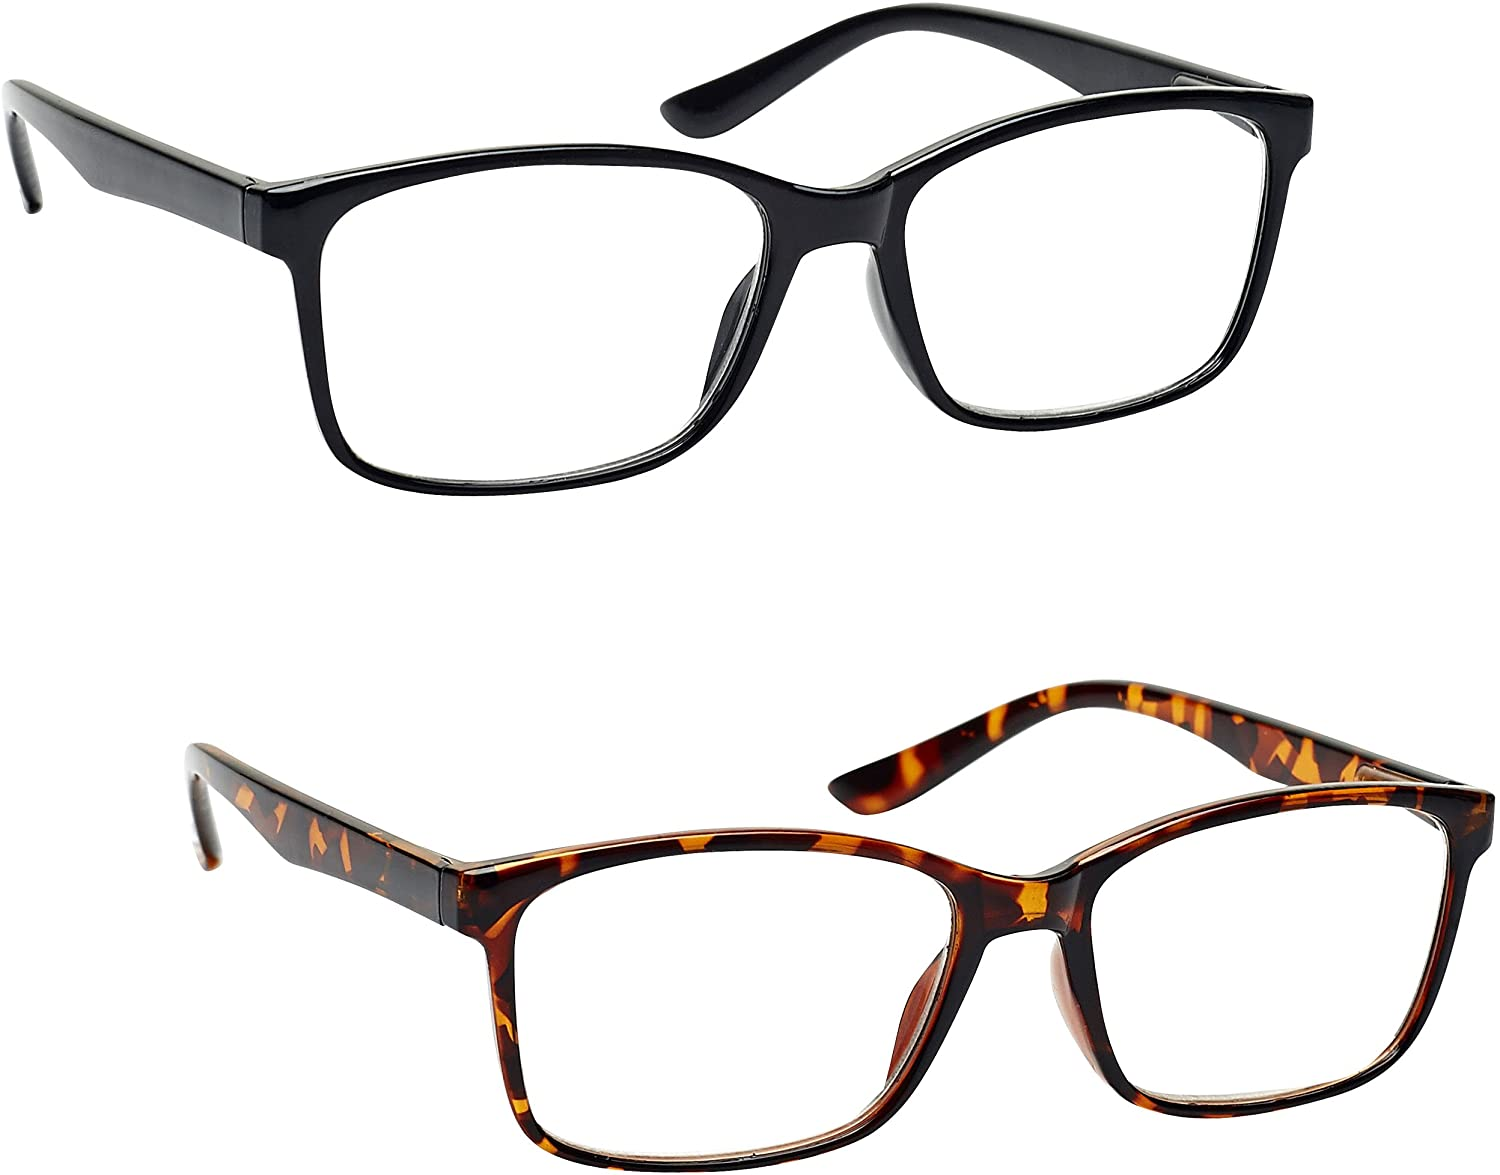 The Reading Glasses Company Black & Brown Tortoiseshell Readers Value 2 Pack Large Mens Spring Hinges RR83-12 +1.25